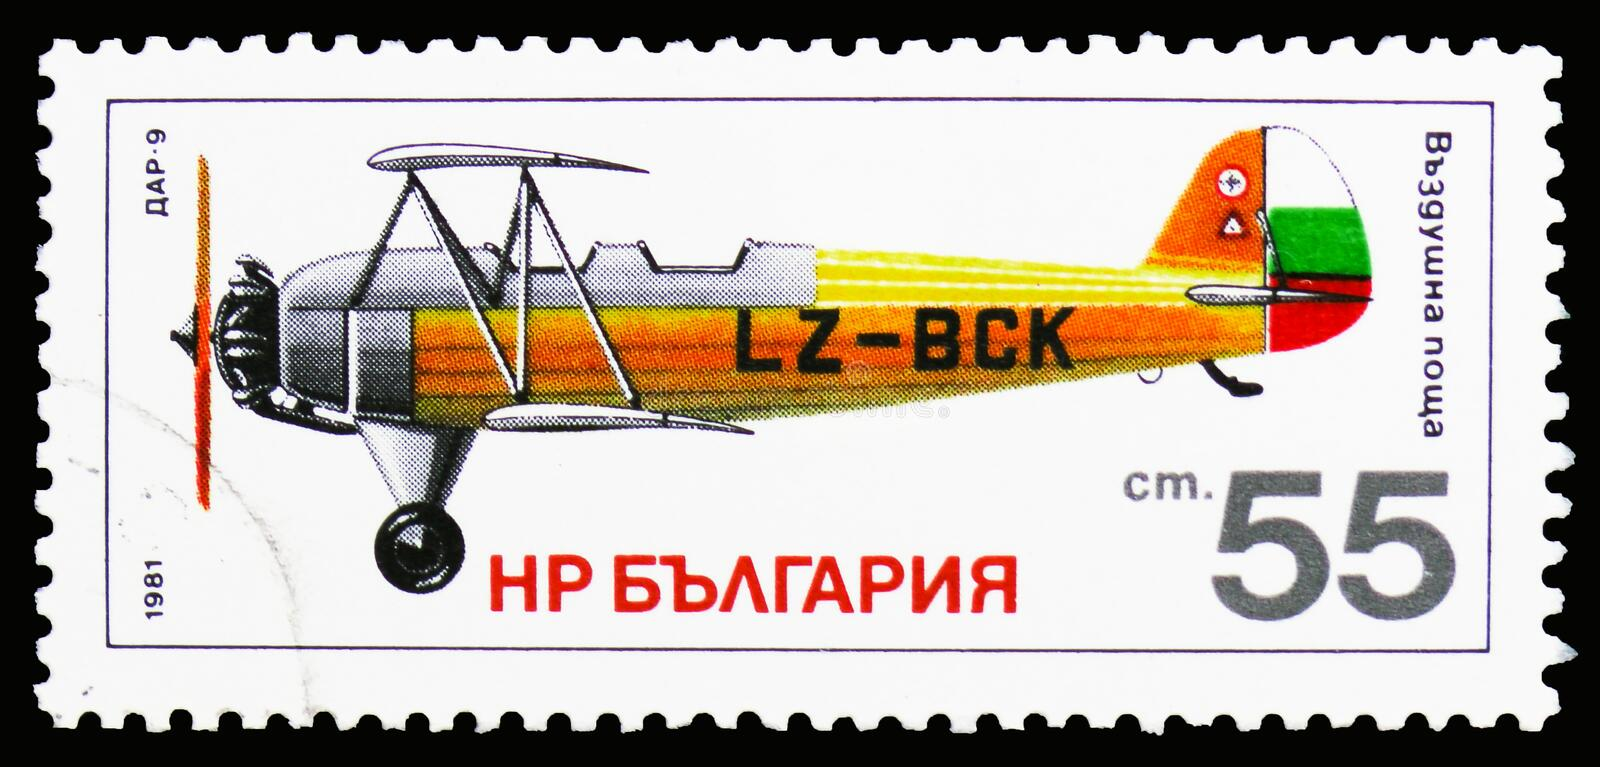 Airplane DAR-9, History of aircraft serie, circa 1981. MOSCOW, RUSSIA - OCTOBER 6, 2018: A stamp printed in Bulgaria shows Airplane DAR-9, History of aircraft royalty free stock photography